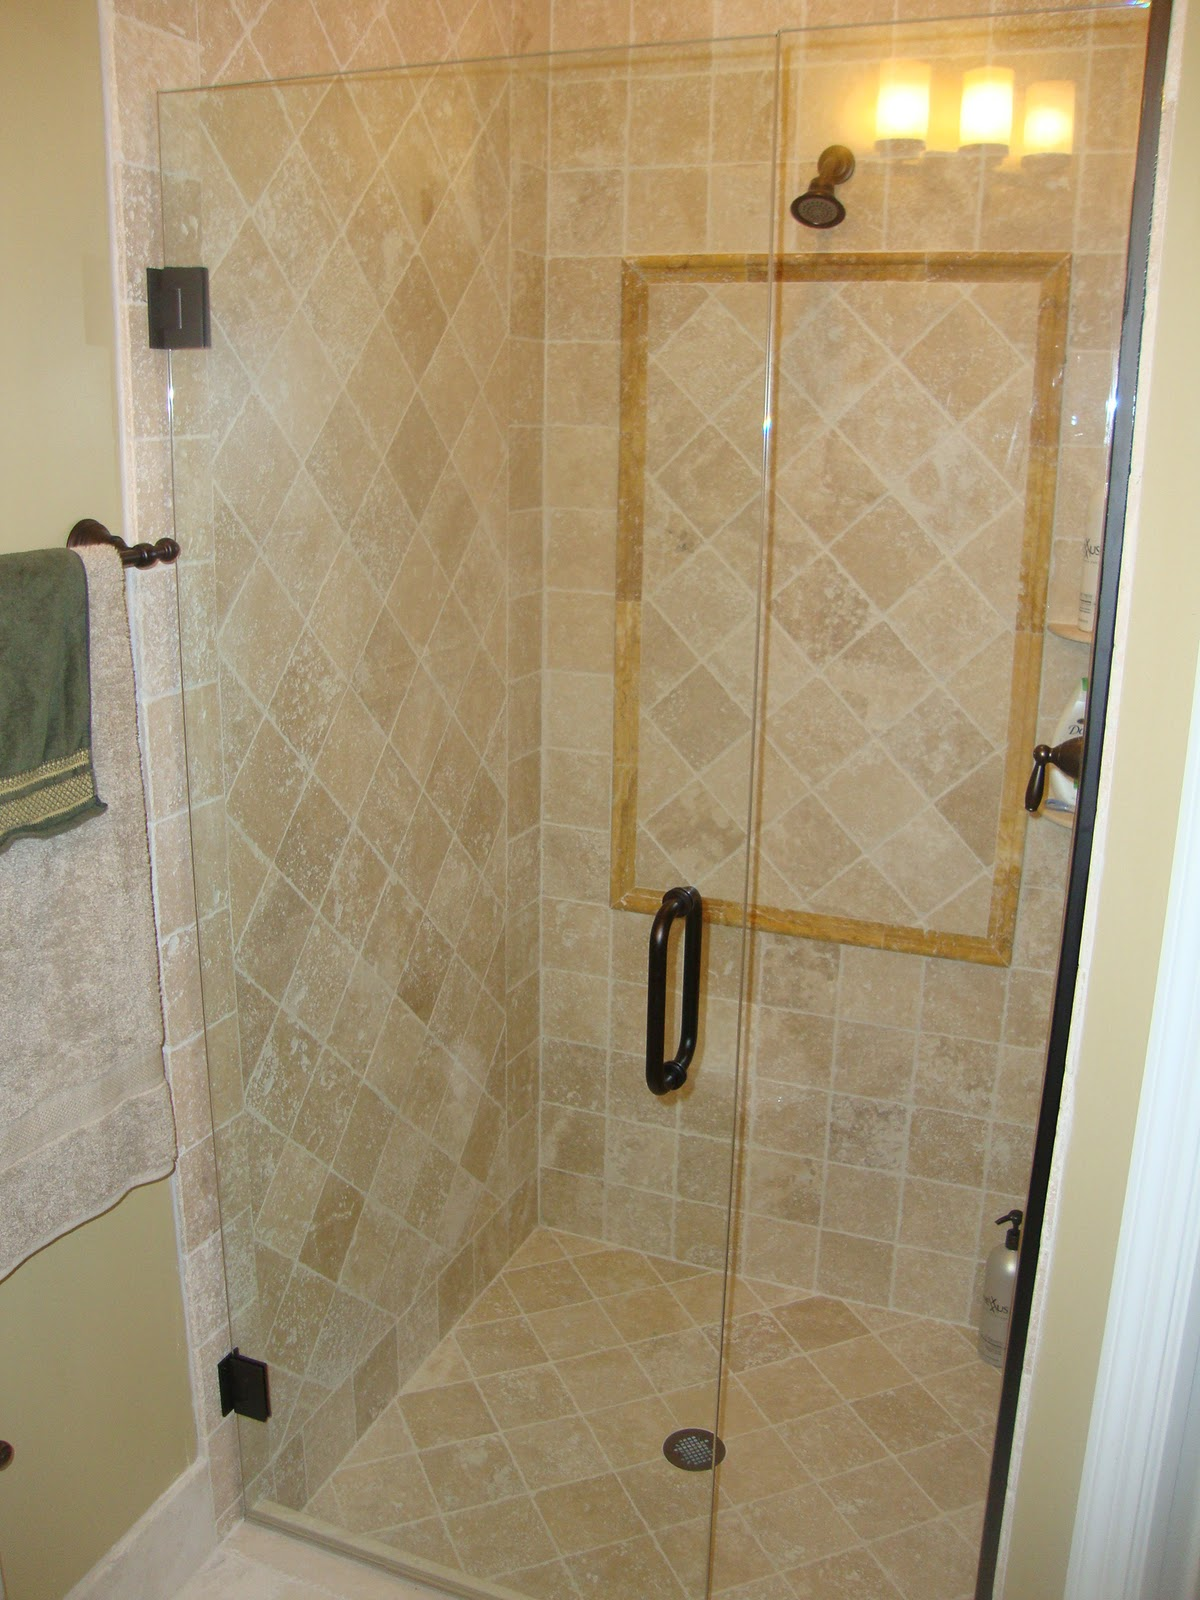 6 X 6 Bathroom Layout http://kgmarbledesignsboca1.blogspot.com/2011/10/italian-travertine-master-bathroom-and.html